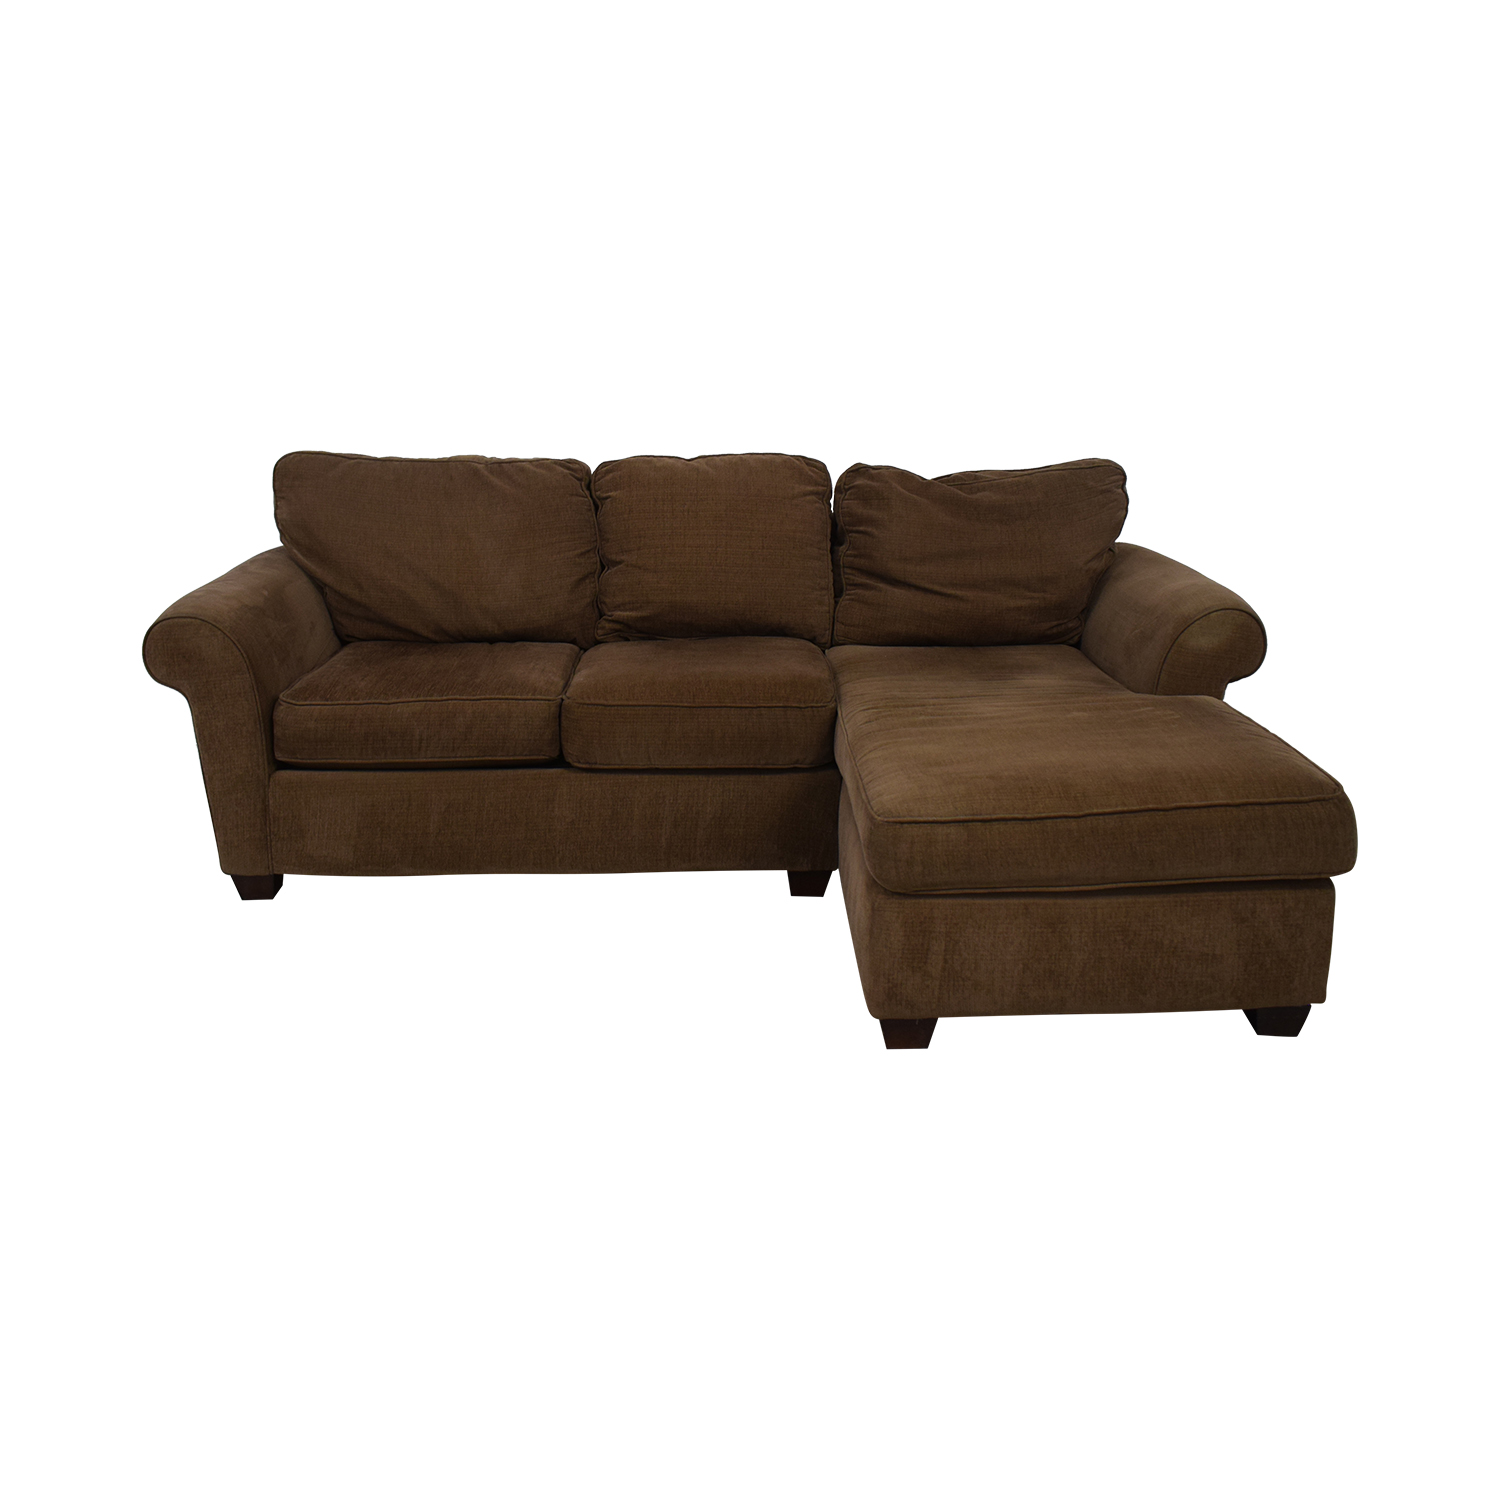 Sensational 83 Off Bauhaus Furniture Bauhaus Furniture Brown Sofa With Chaise Sofas Bralicious Painted Fabric Chair Ideas Braliciousco